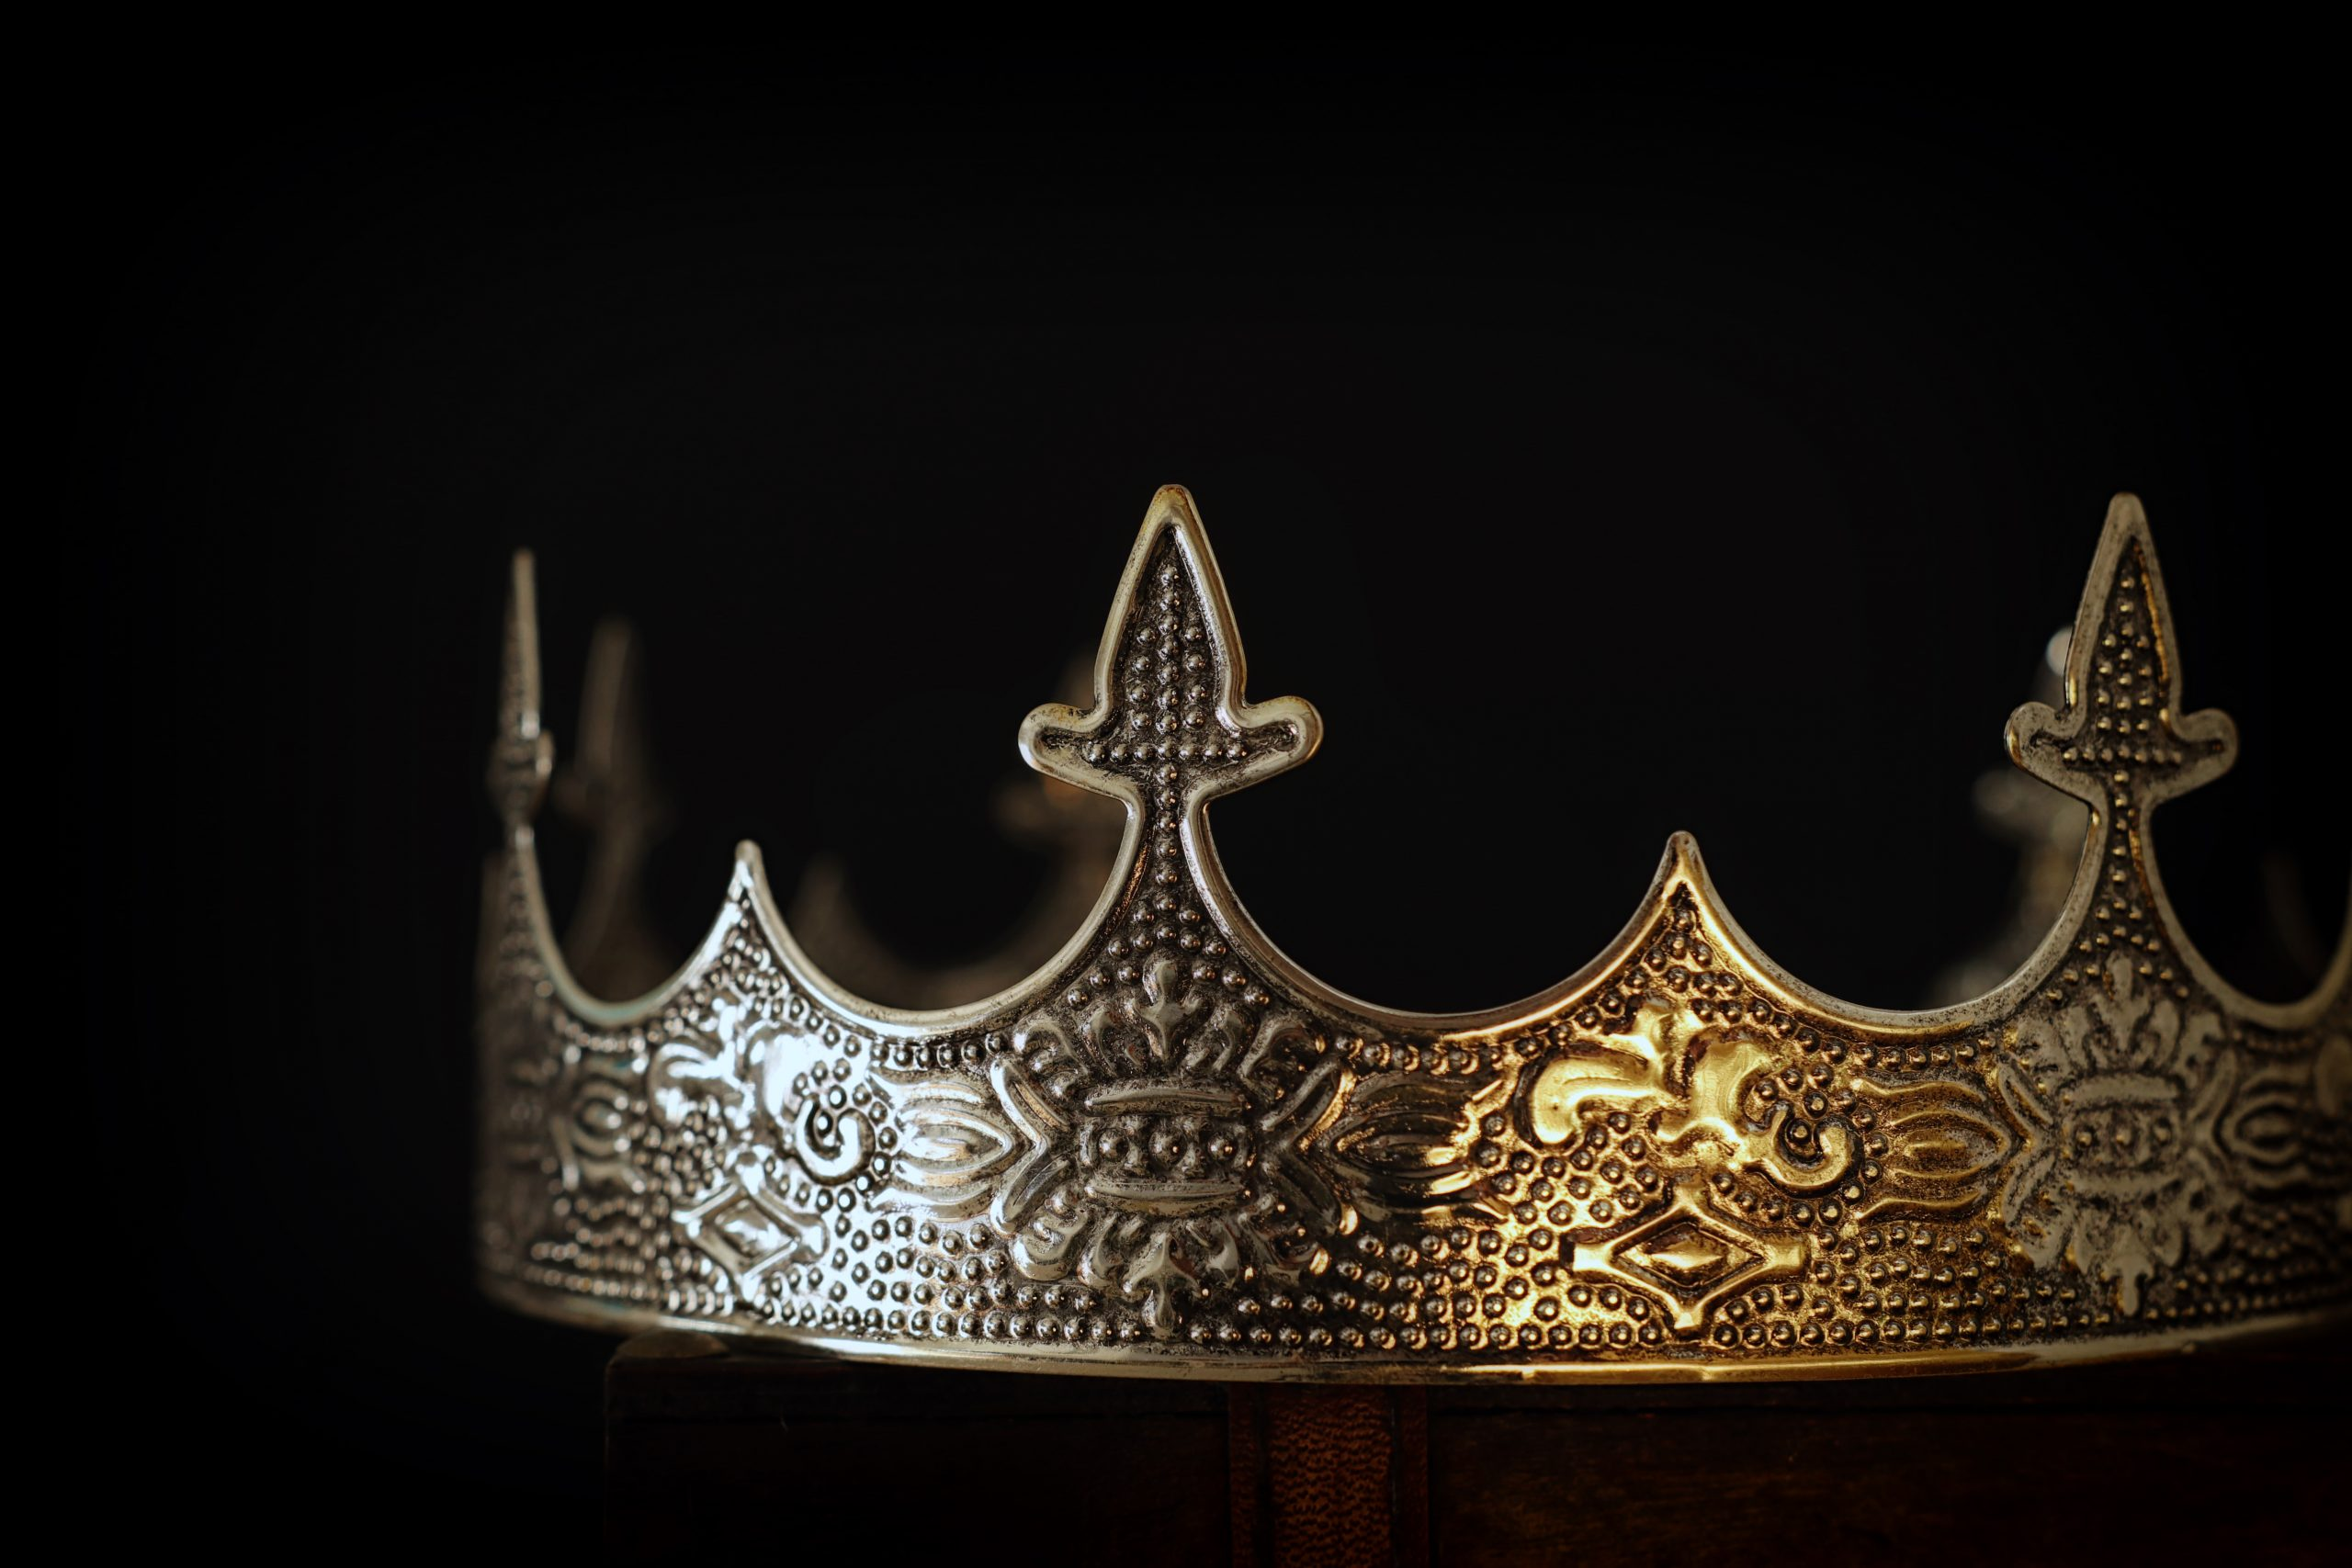 Serving the crown